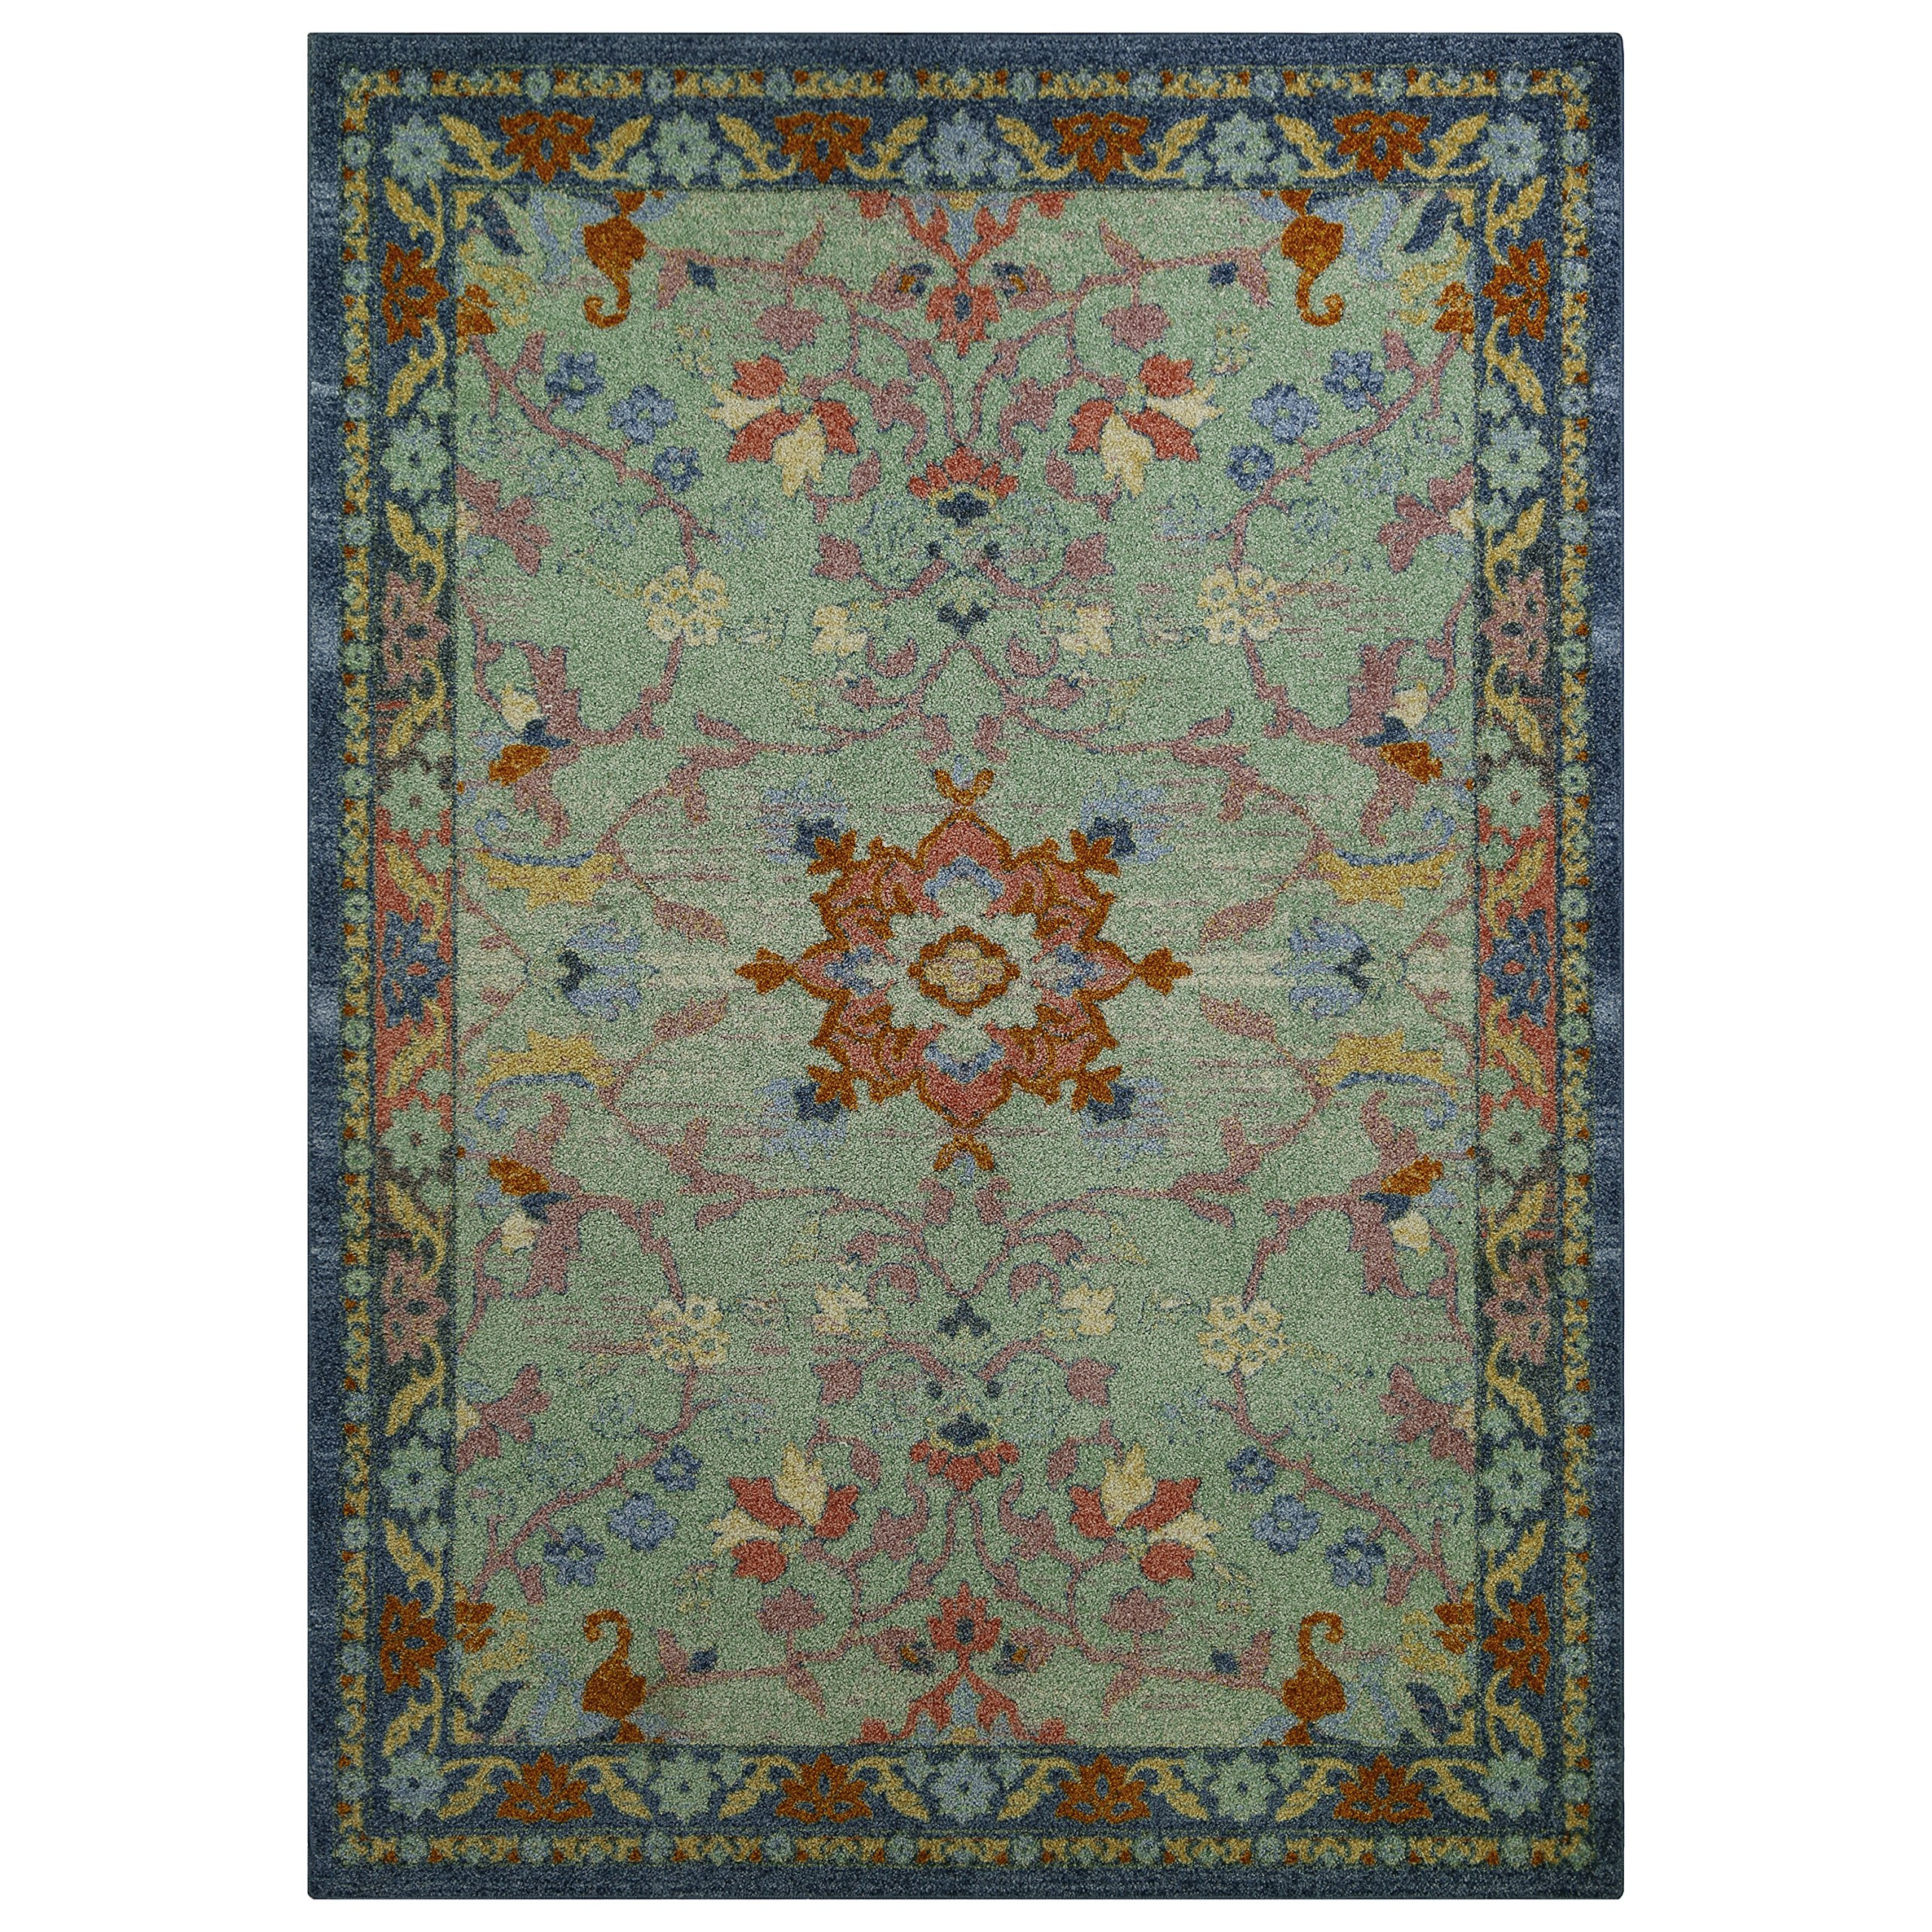 Area Rugs, Maples Rugs [Made in USA][Tilda Artwork Collection] 7' x 10' Non Slip Padded Large Rug for Living Room, Bedroom, and Dining Room